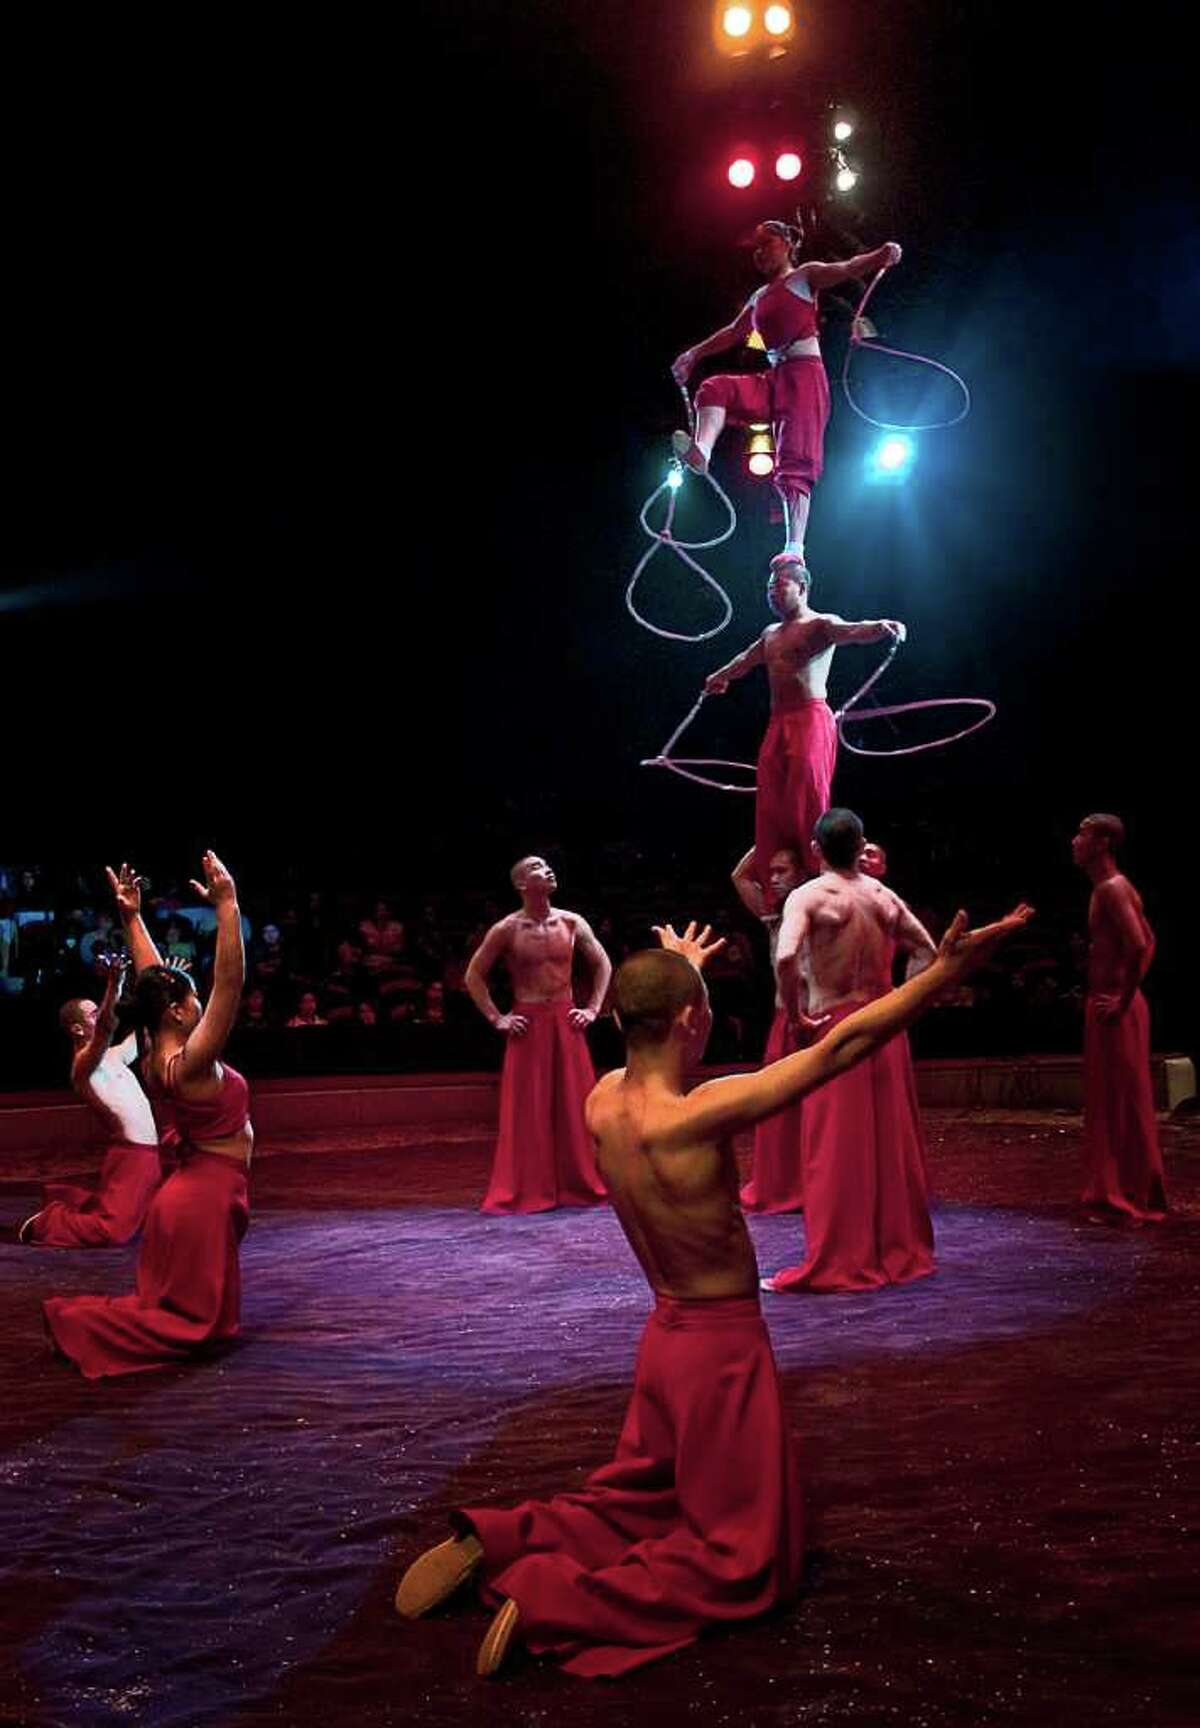 The Big Apple Circus gave a performance in Stamford on June 12.